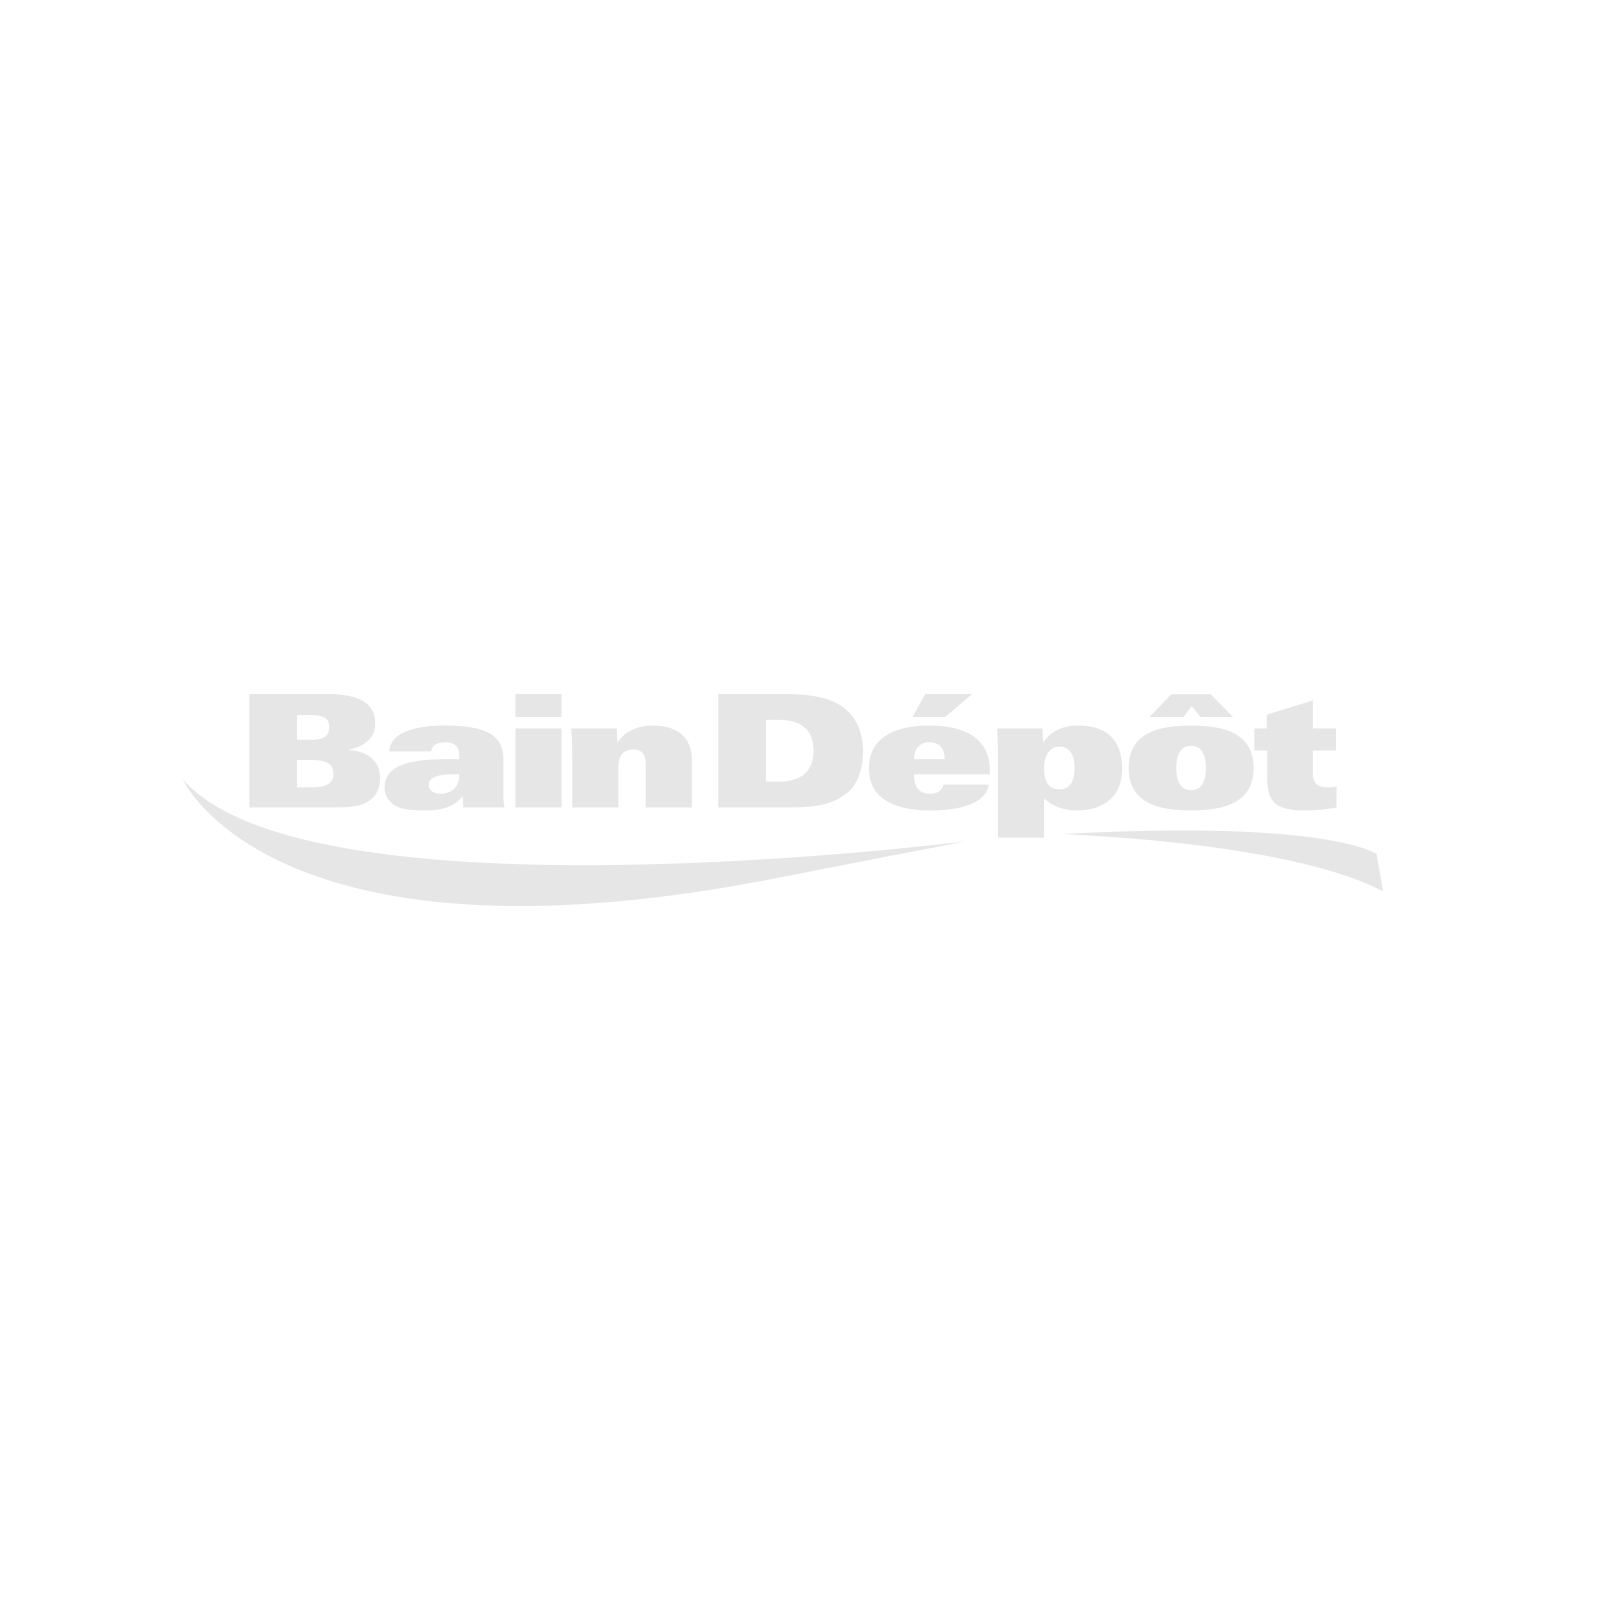 grand miroir mural ikea trendy miroir ikea blanc meuble a chaussures miroir zapa blanc meuble. Black Bedroom Furniture Sets. Home Design Ideas